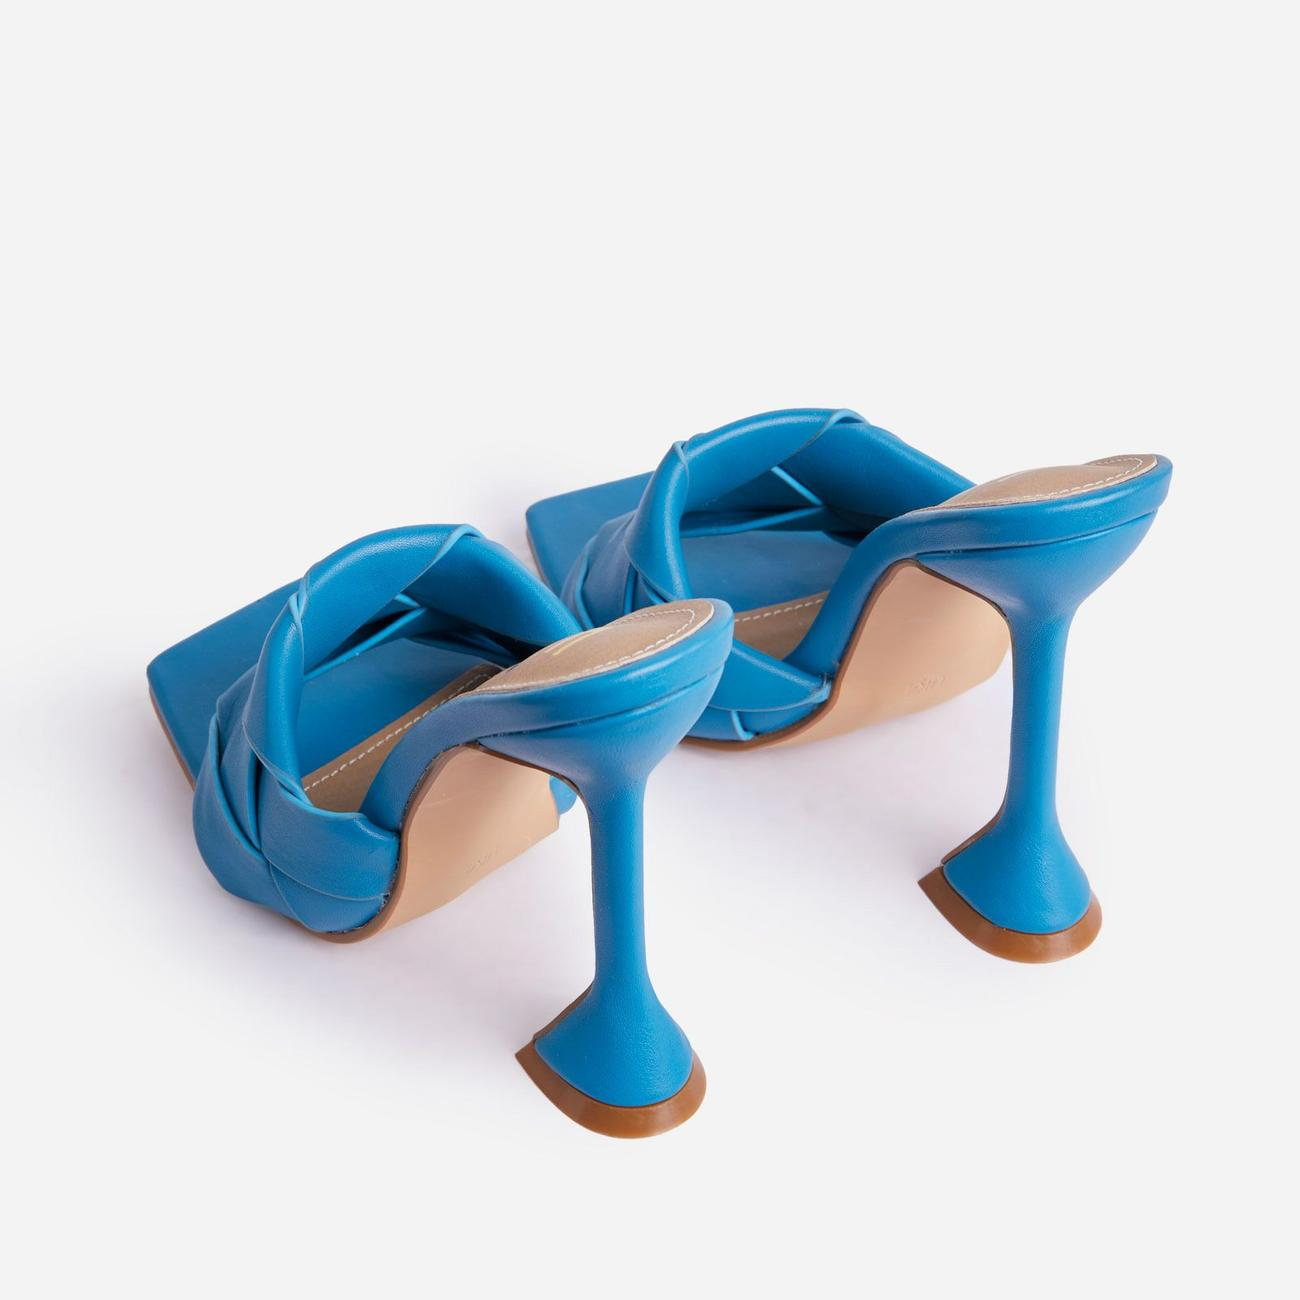 Handled Woven Square Peep Toe Pyramid Heel Mule In Blue Faux Leather Image 3